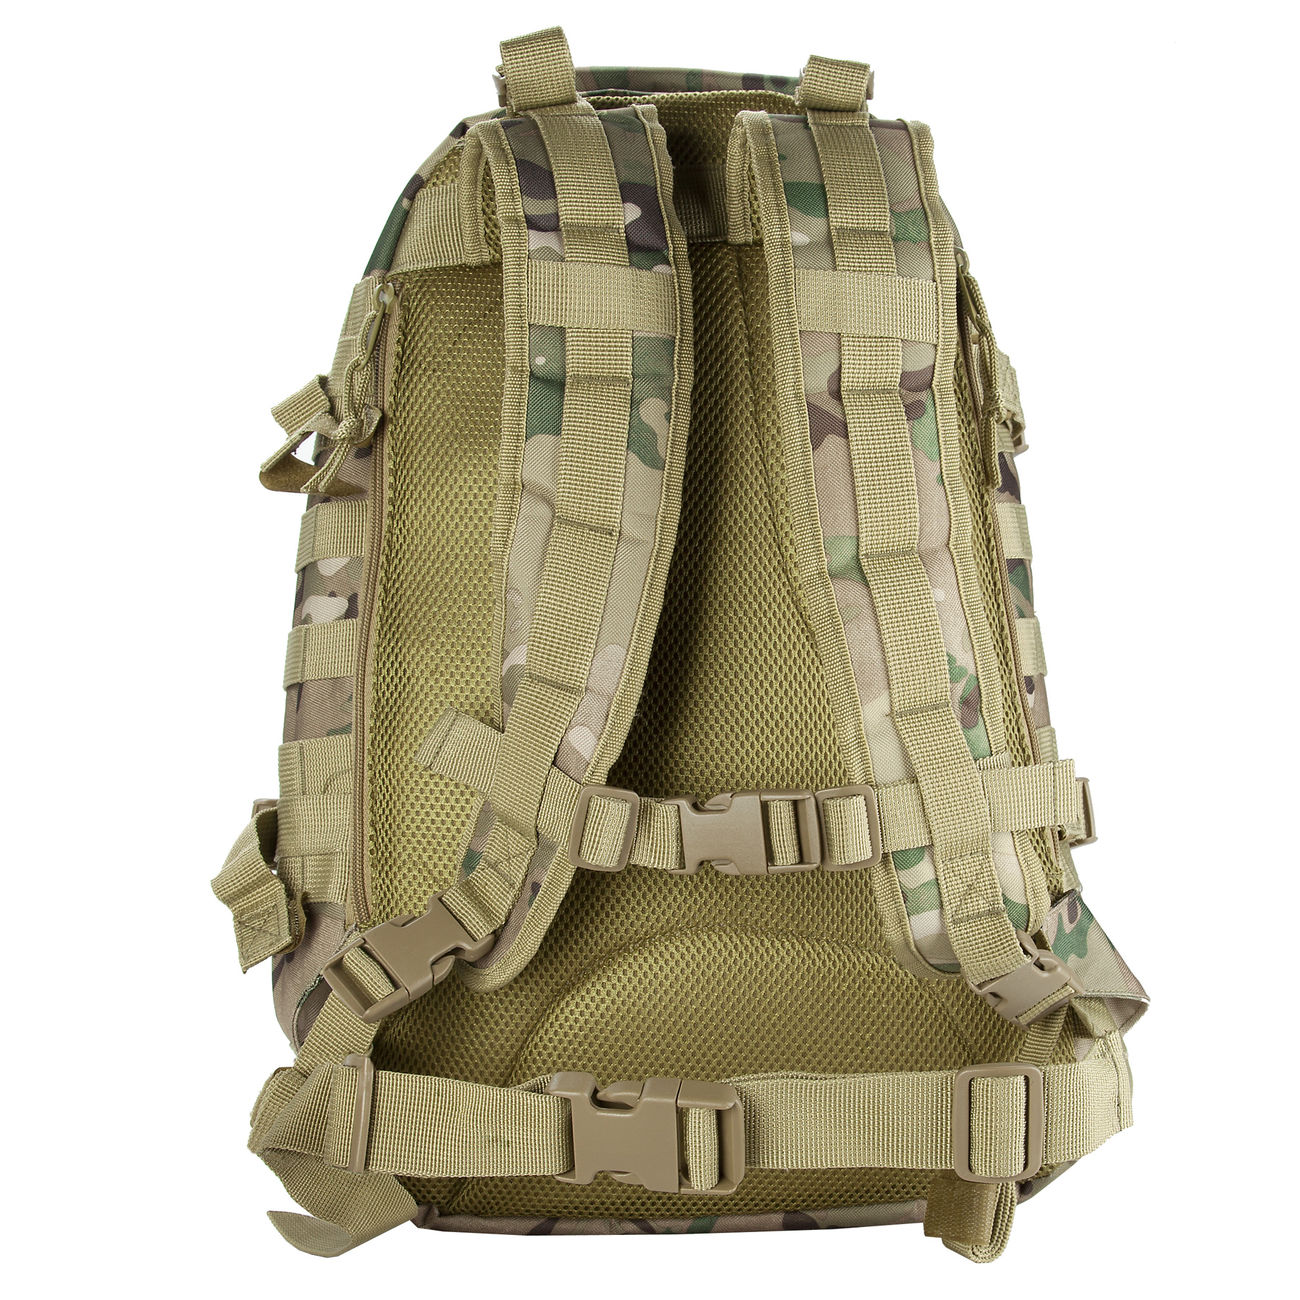 101 INC. Rucksack Mission Pack DTC multi 2